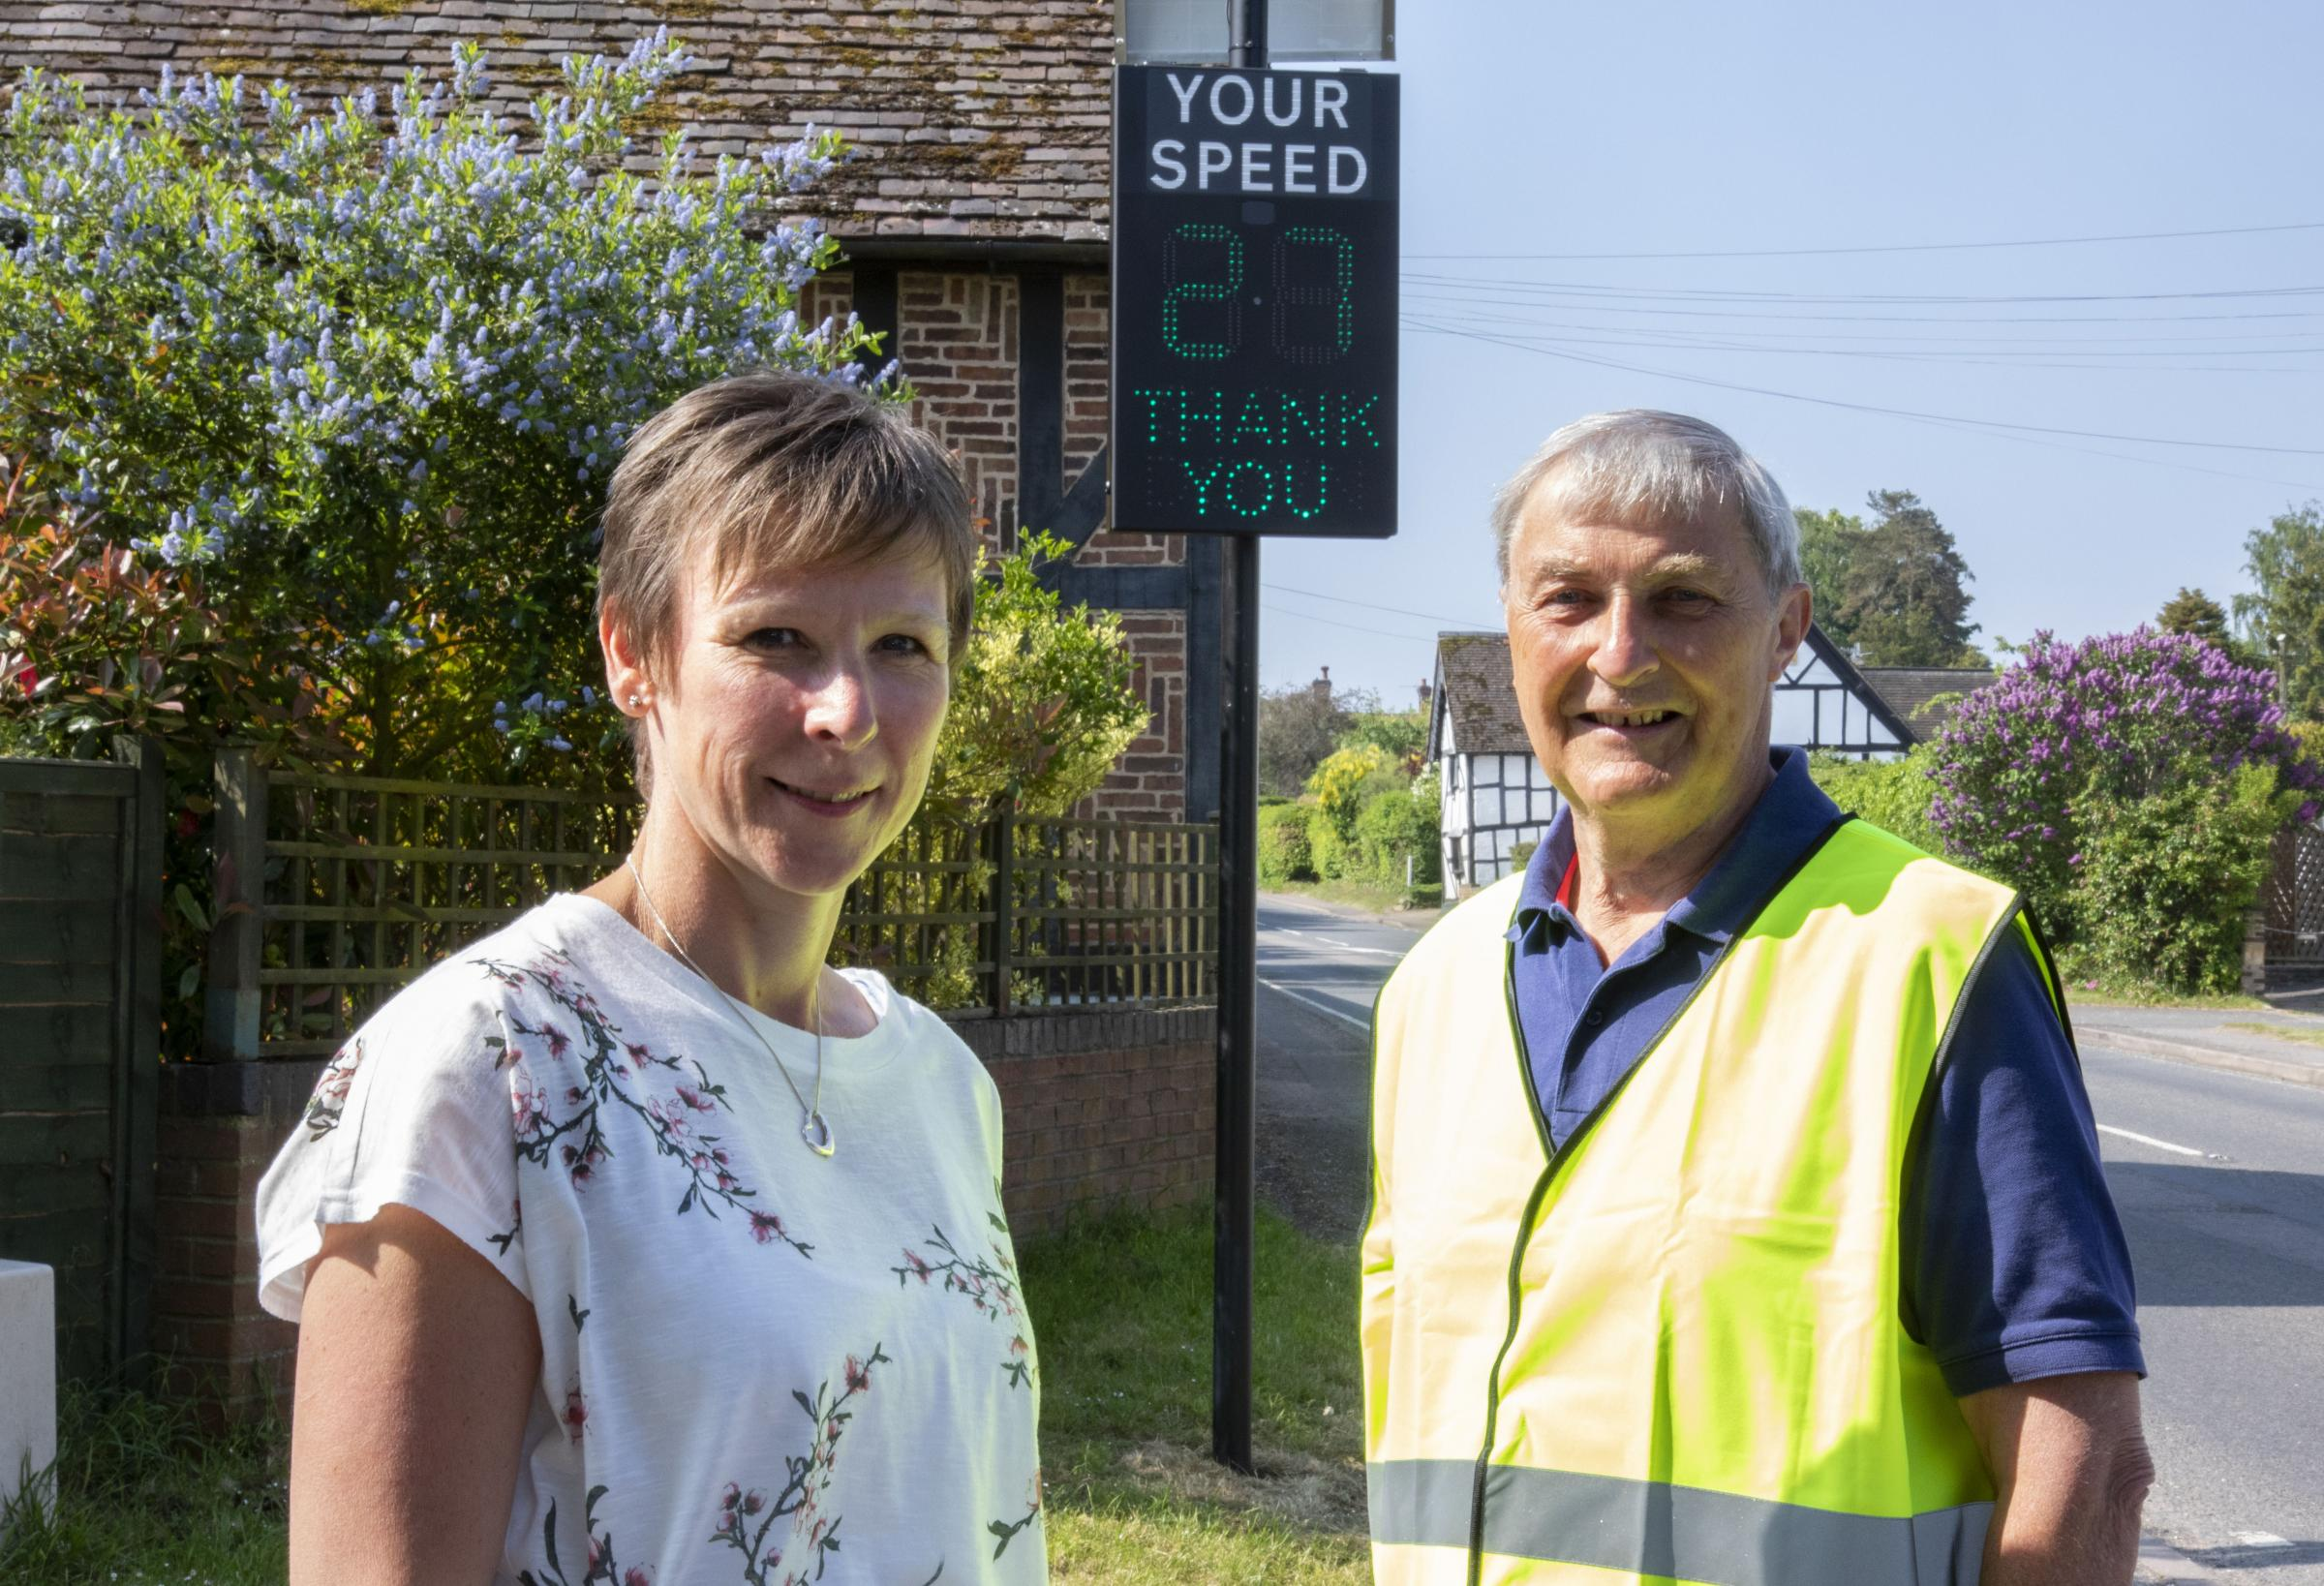 WN_210518_01 Paul Jackson 21.05.18 Norton - News speed activated sign. From left - Sue Drayton and Trevor Battersby, Norton and Lenchwick parish councillors..